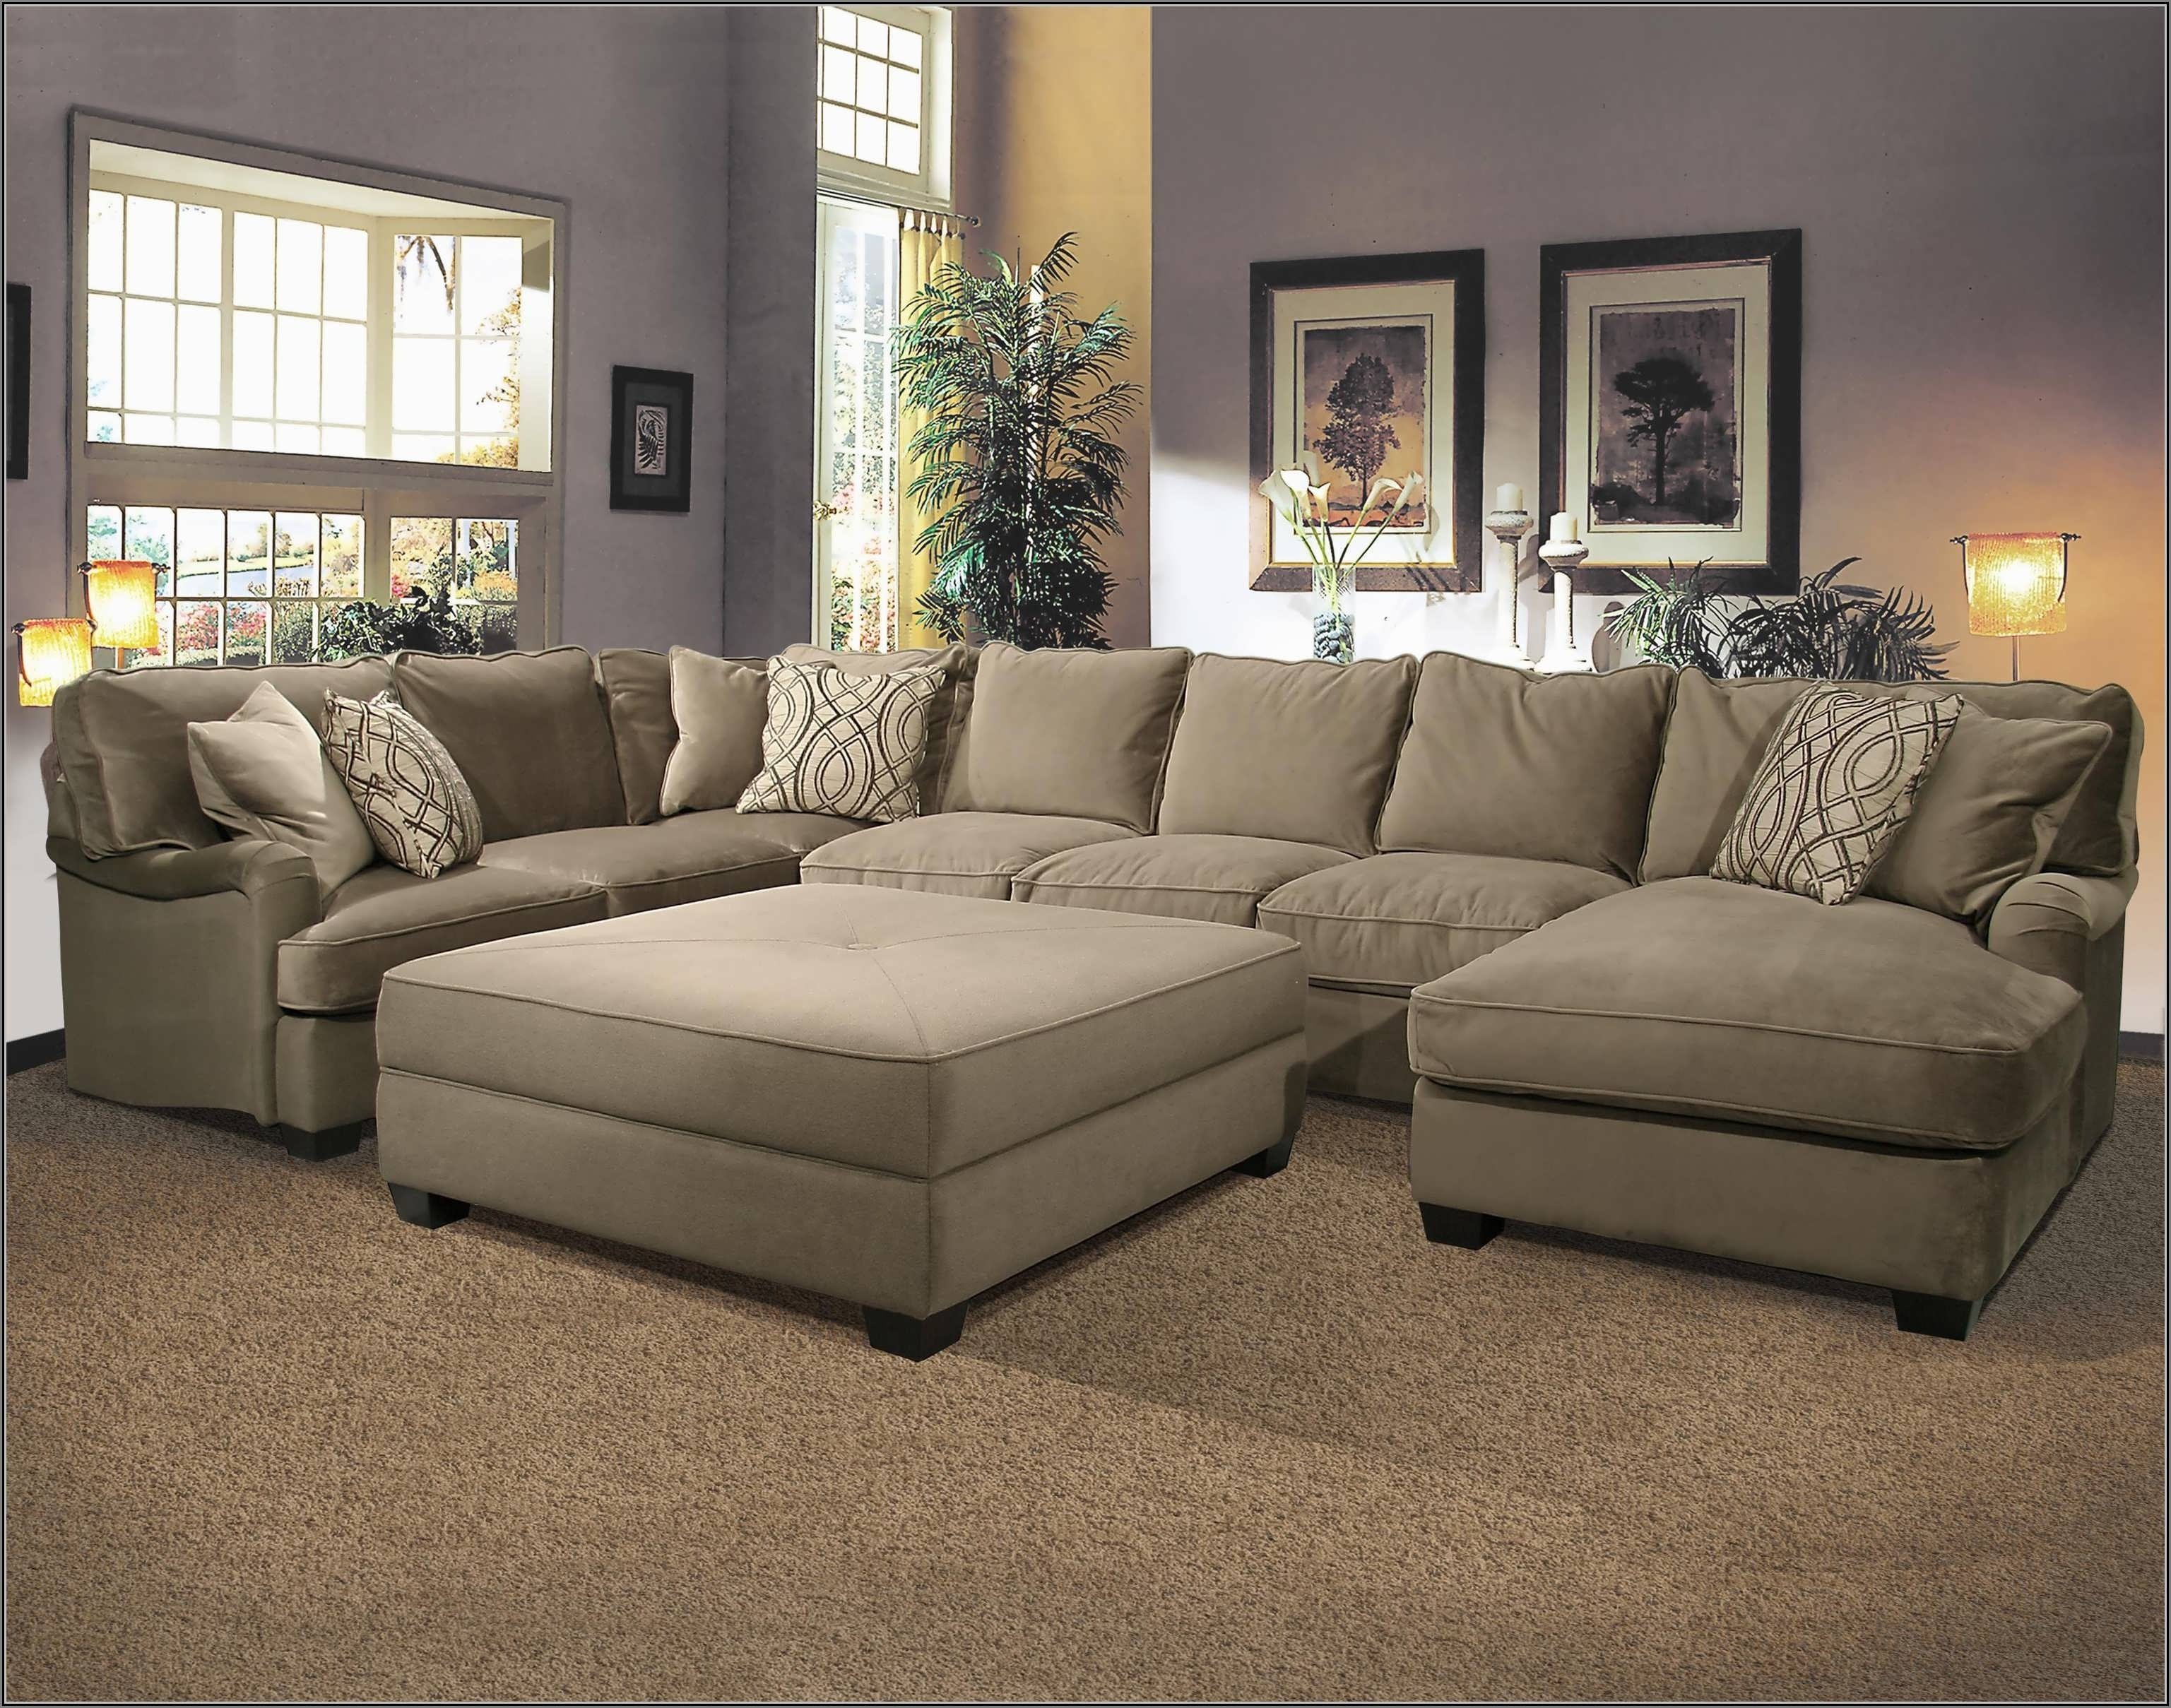 Livingroom : Marvellous Furniture Designs For Small Living Room Sofa Regarding Sectional Sofas In Philippines (View 10 of 10)